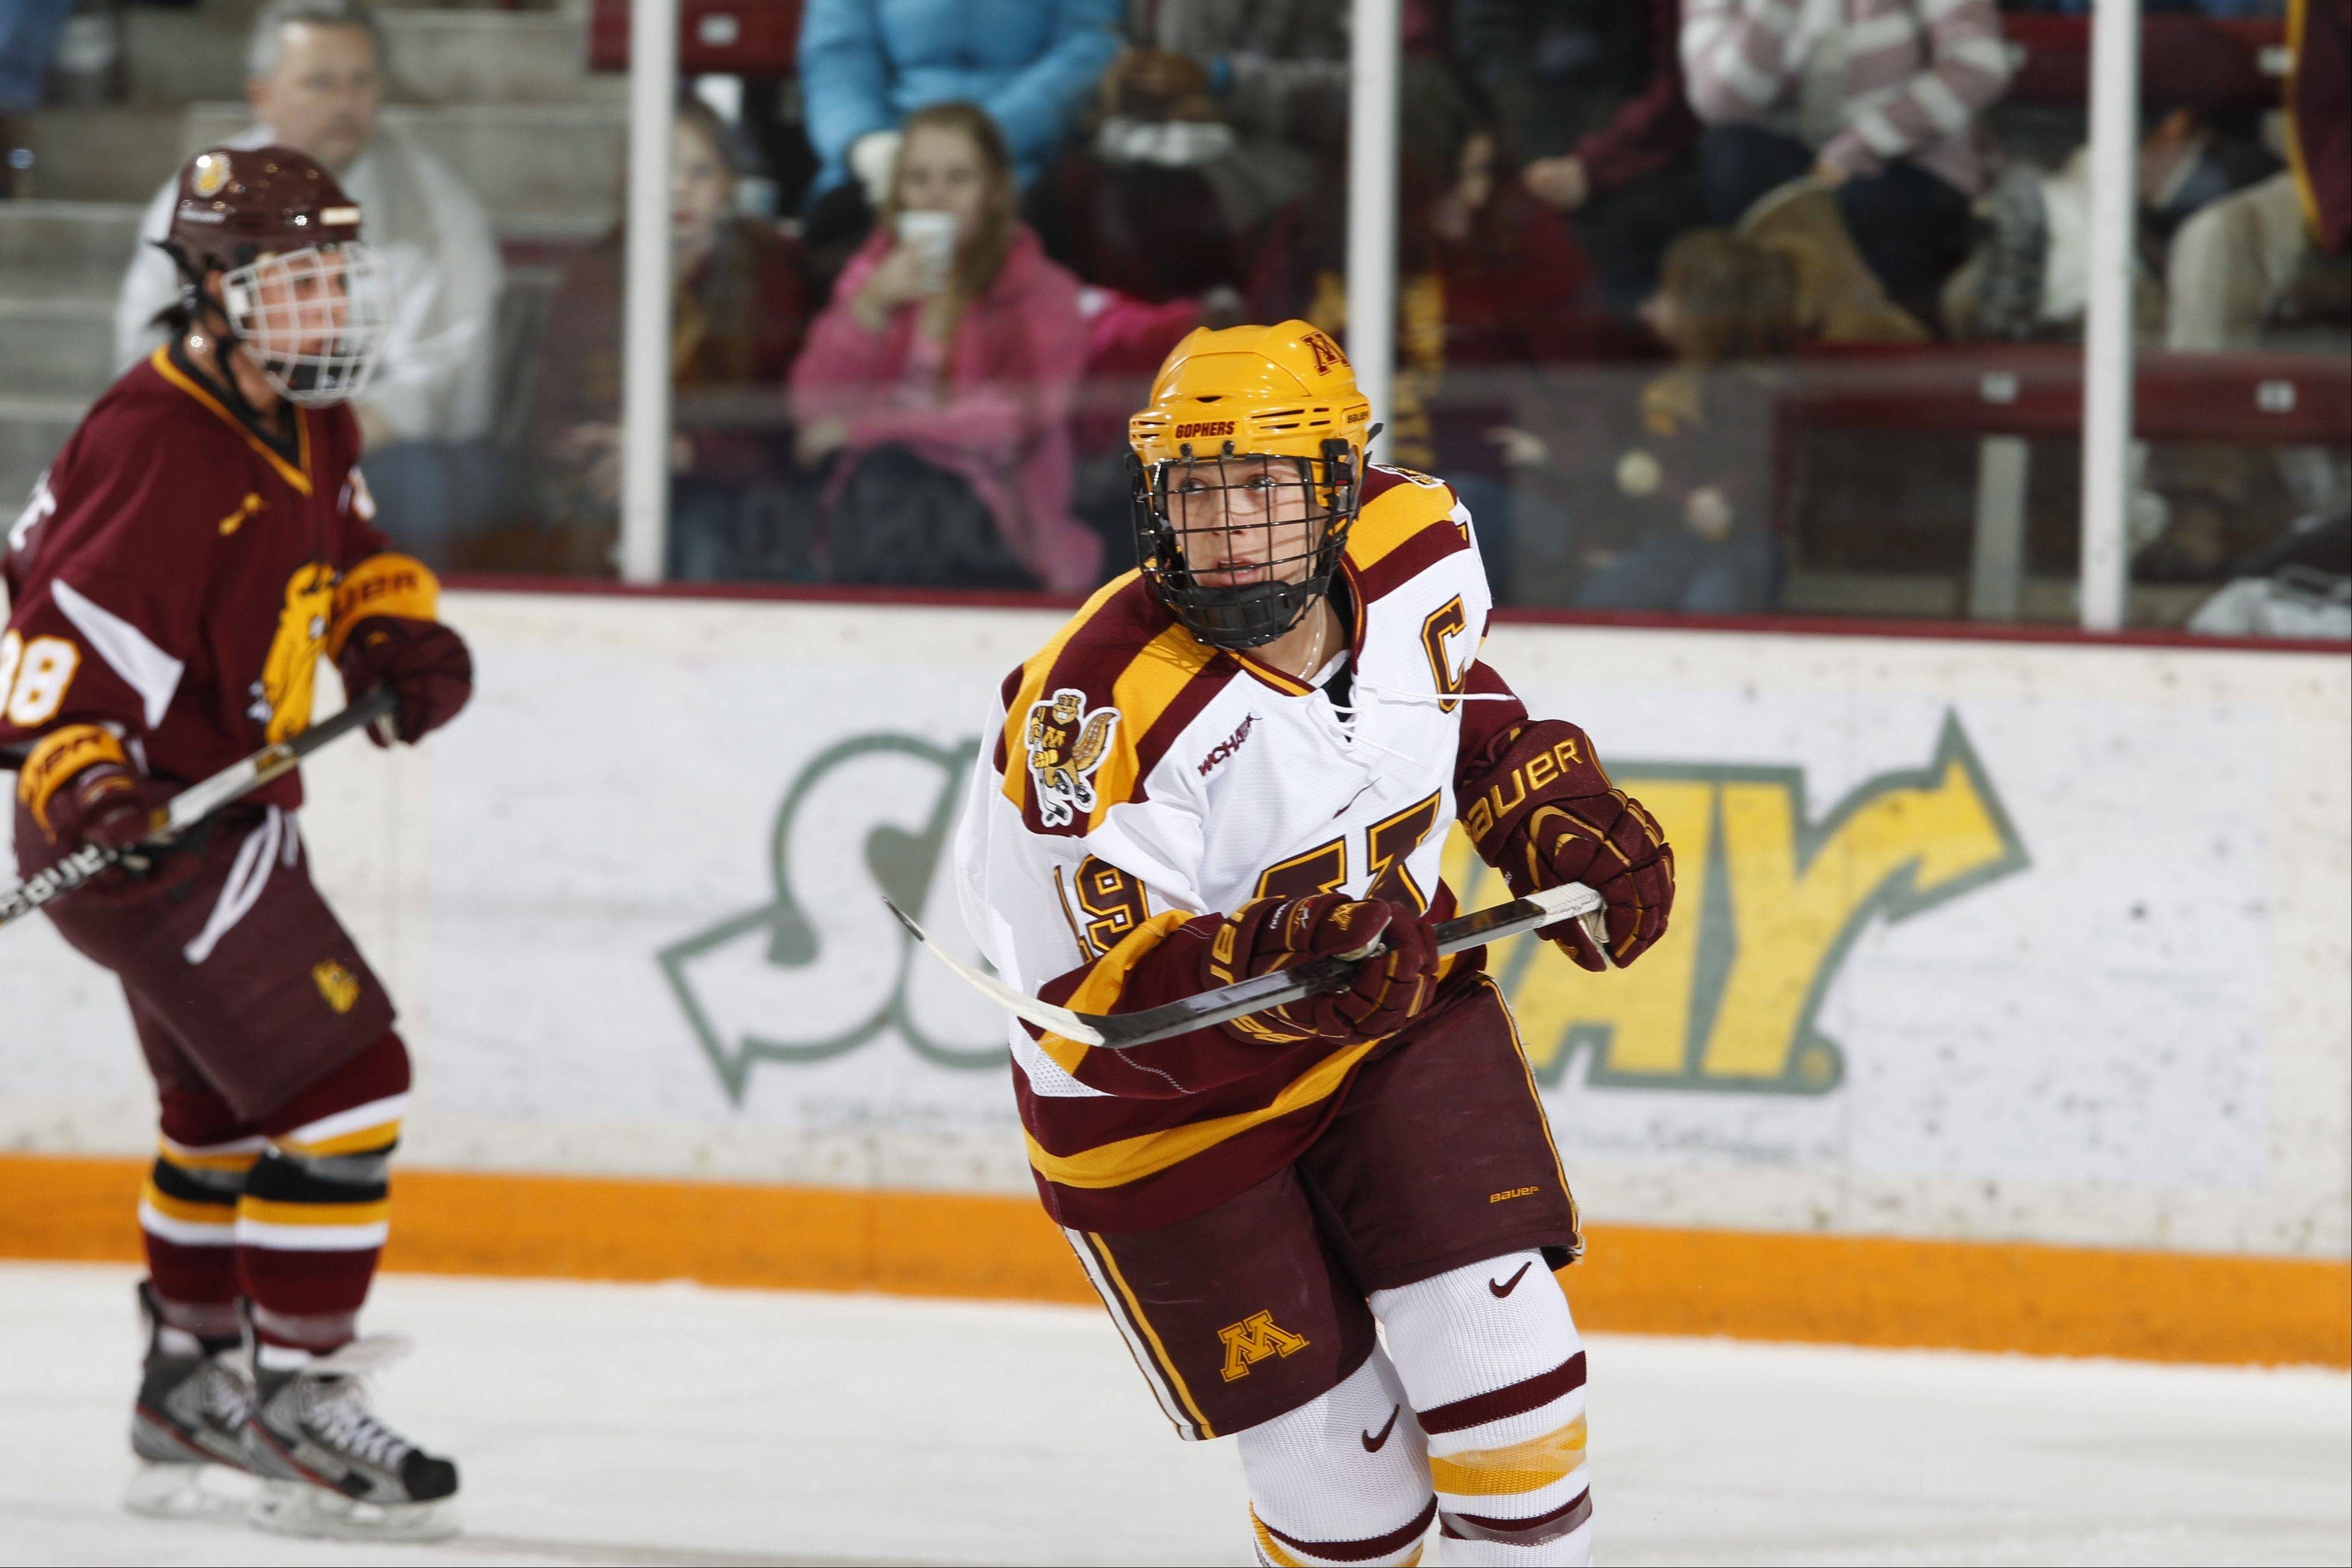 Buffalo Grove native Megan Bozek just broke the University of Minnesota women's record for career goals (42) and career points (135) by a defenseman.